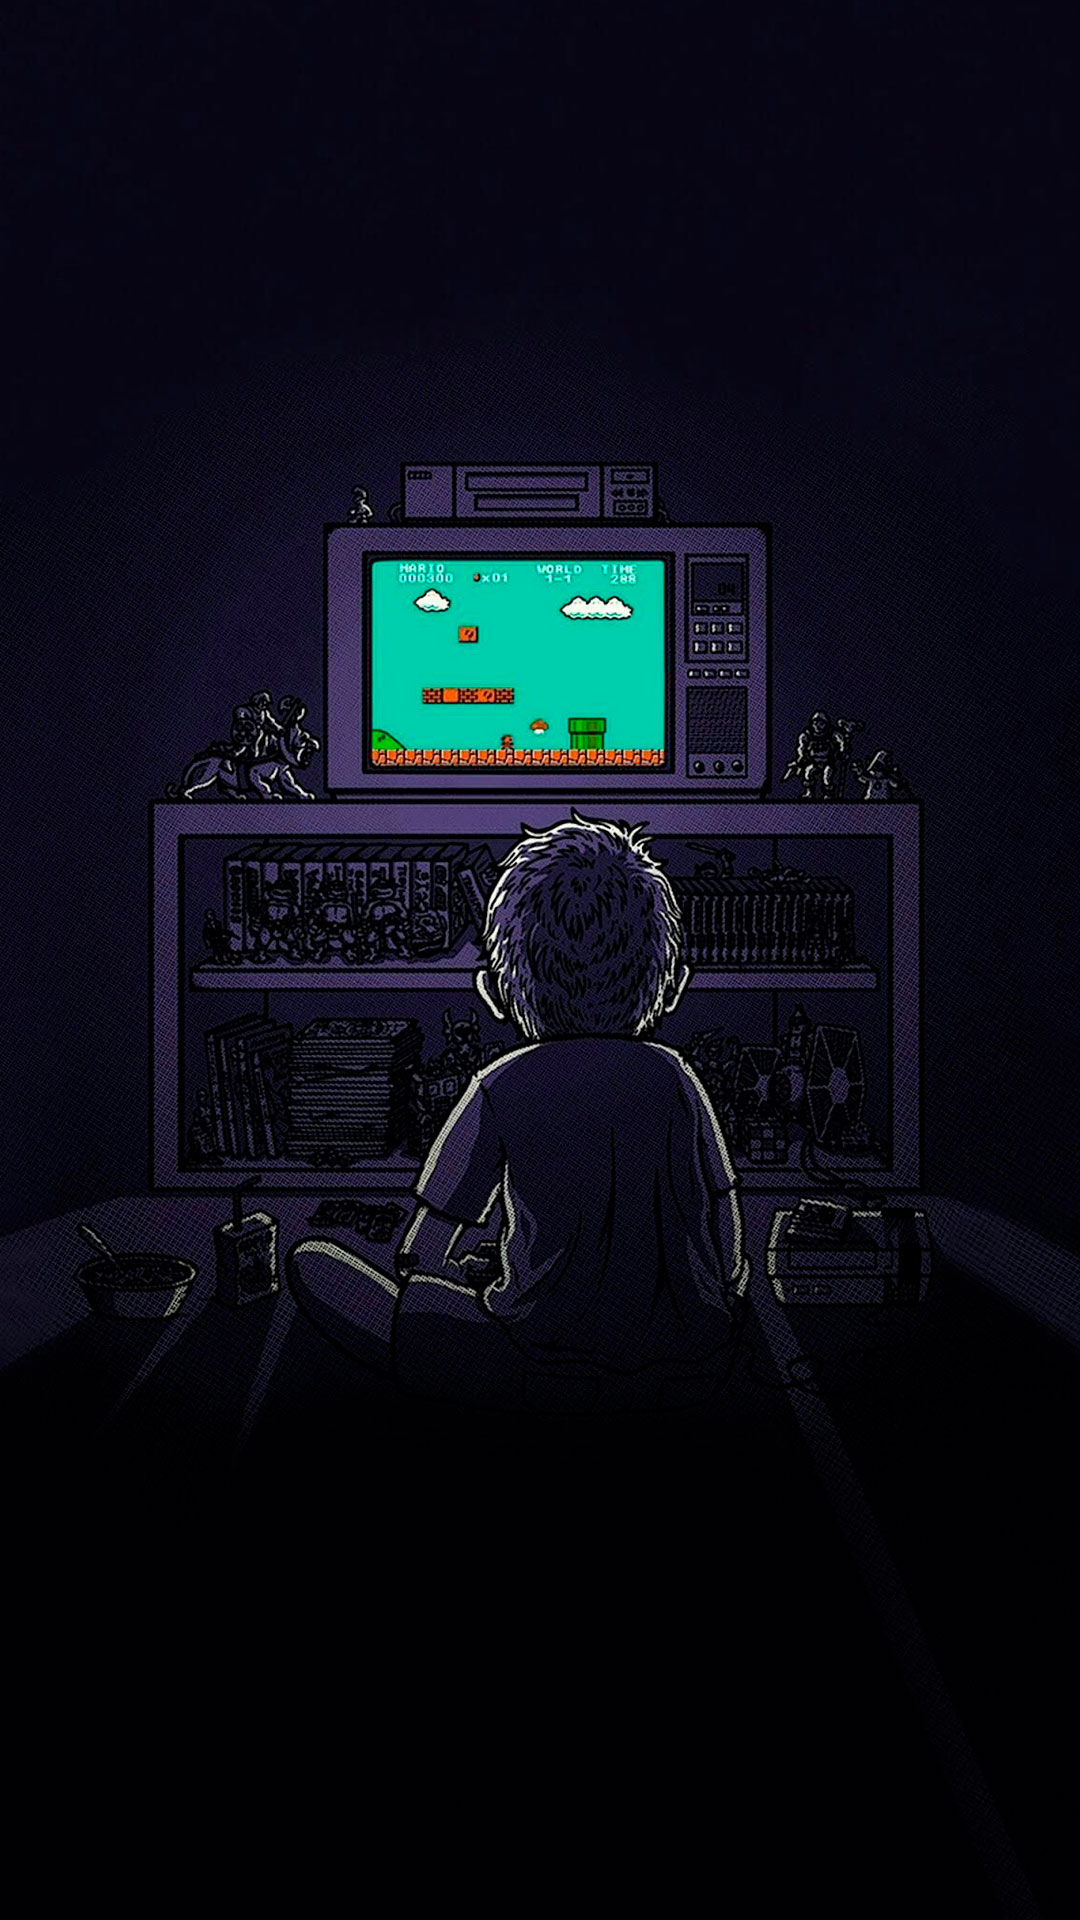 Retro games Wallpaper for iPhone X, 8, 7, 6 - Free ...